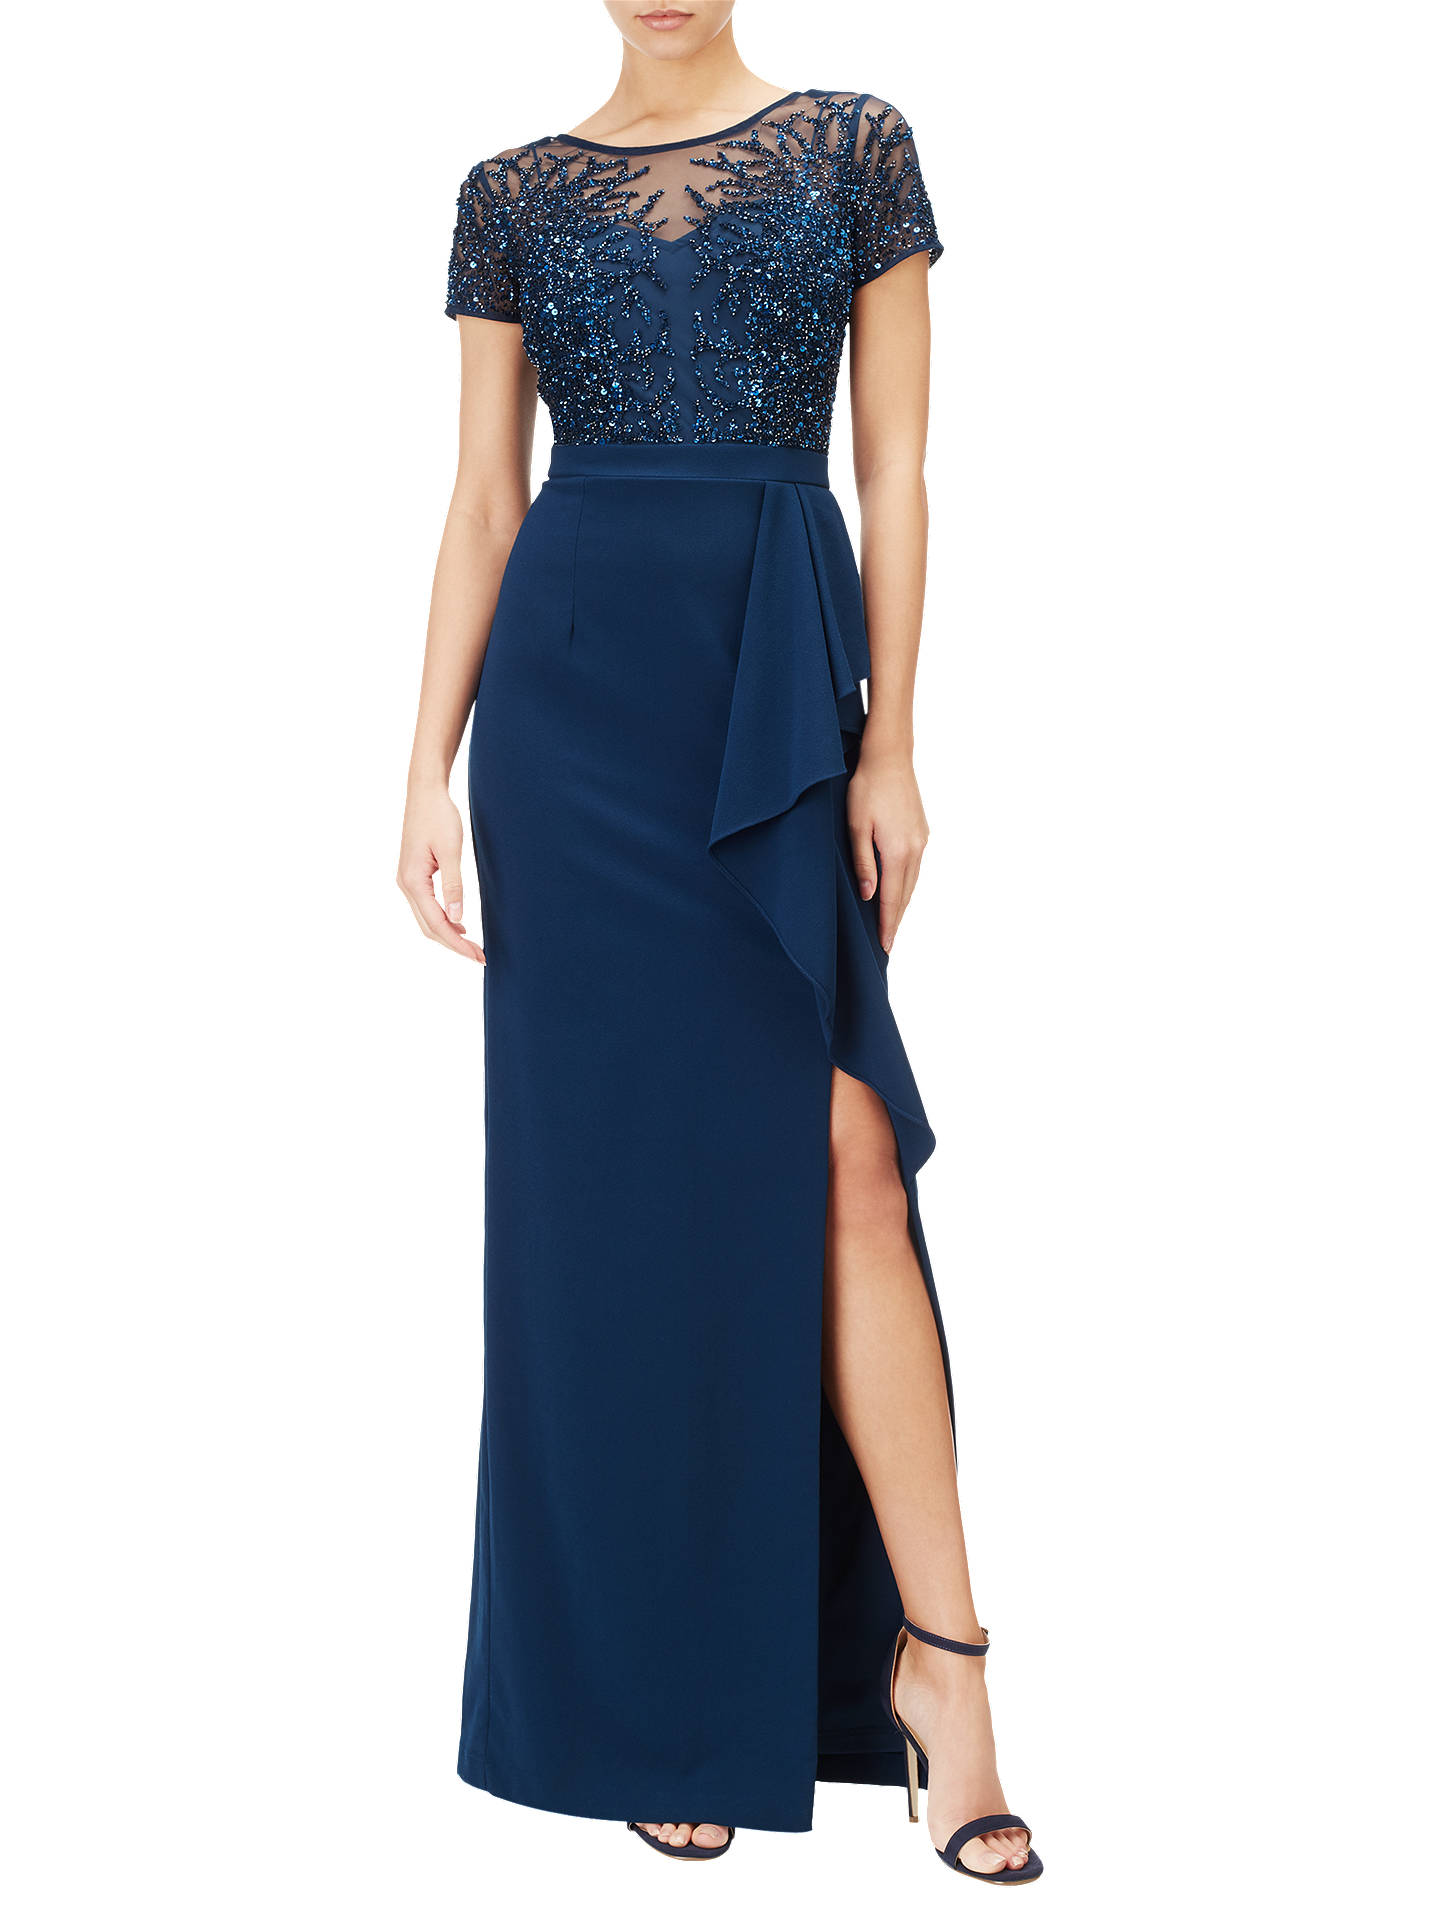 BuyAdrianna Papell Petite Beaded Gown, Deep Blue, 8 Online at johnlewis.com